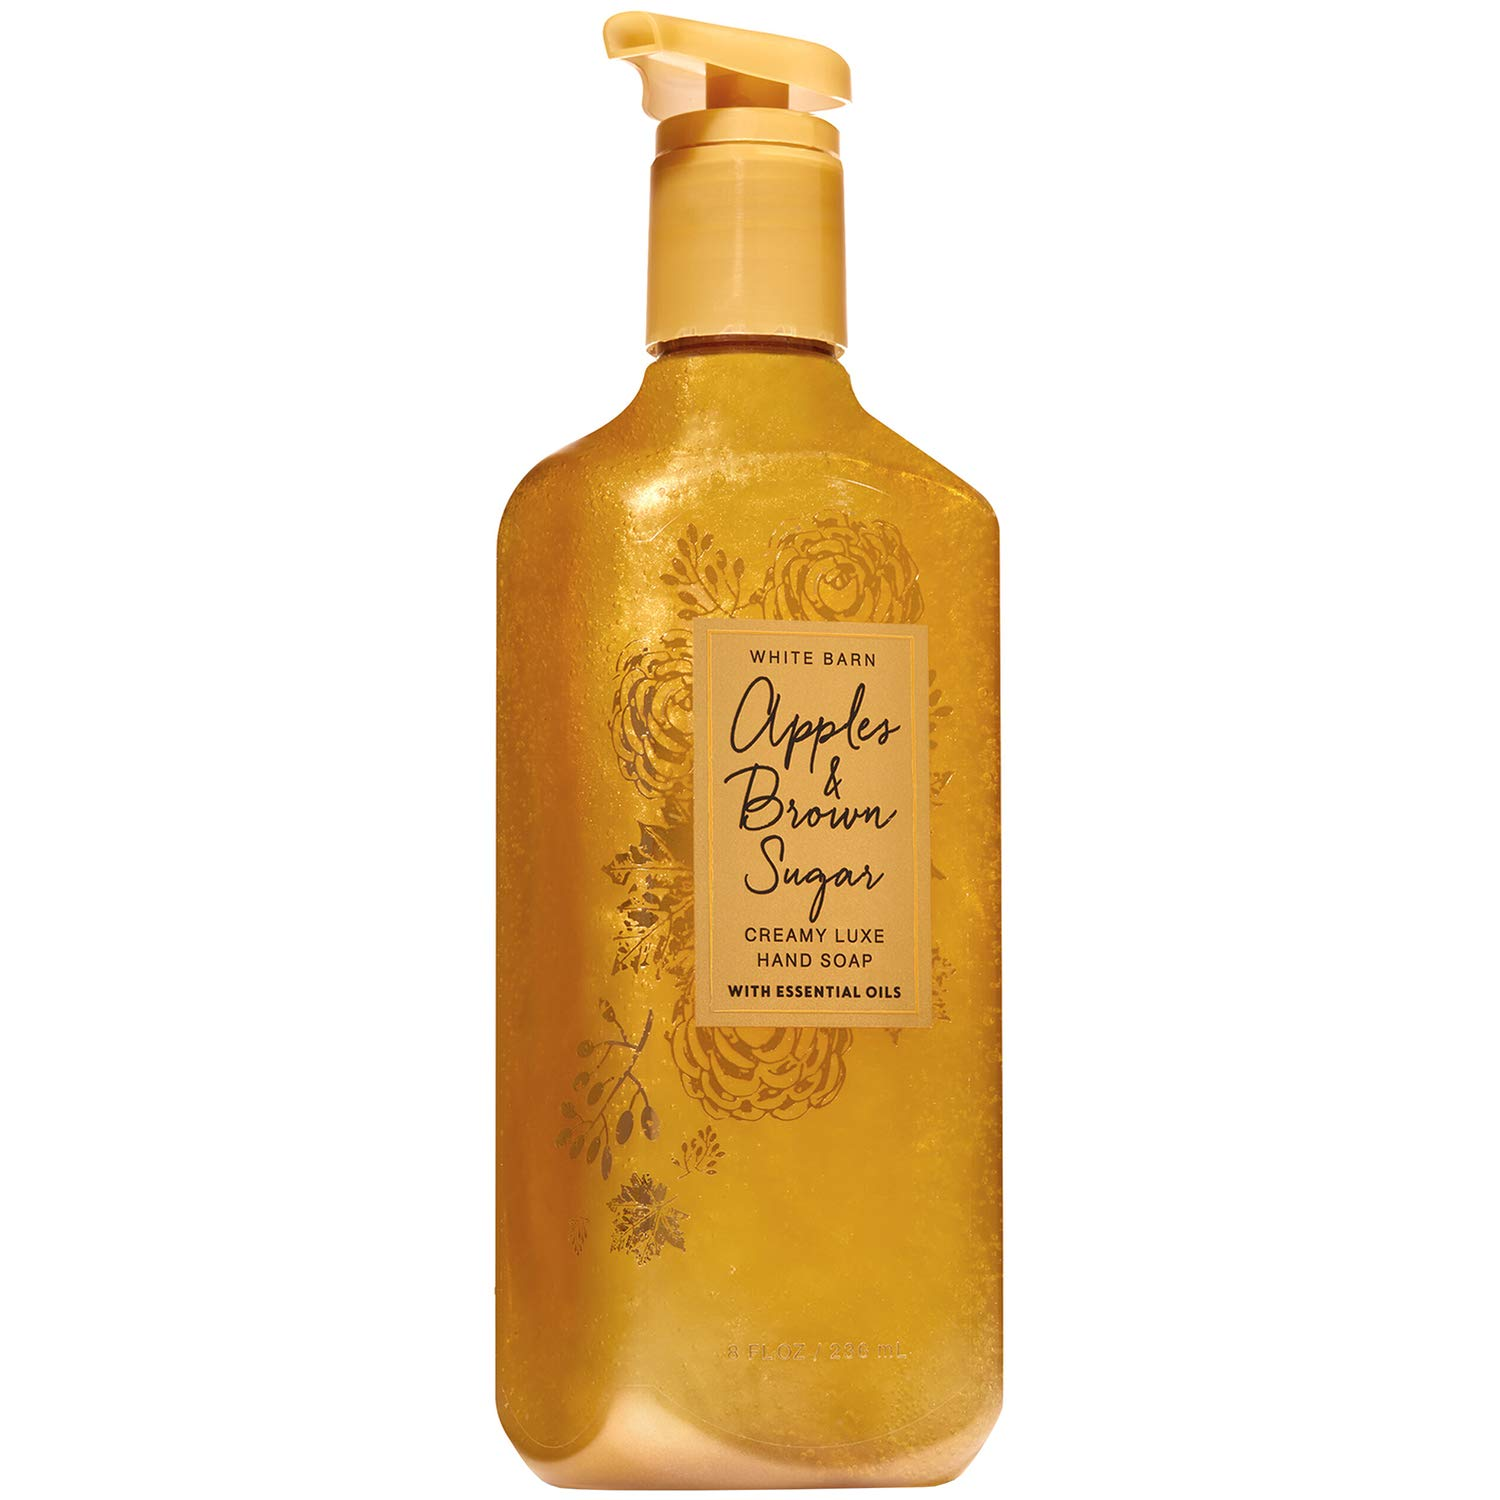 Bath and Body Works APPLES & BROWN SUGAR Creamy Luxe Hand Soap (2019 Limited Edition)